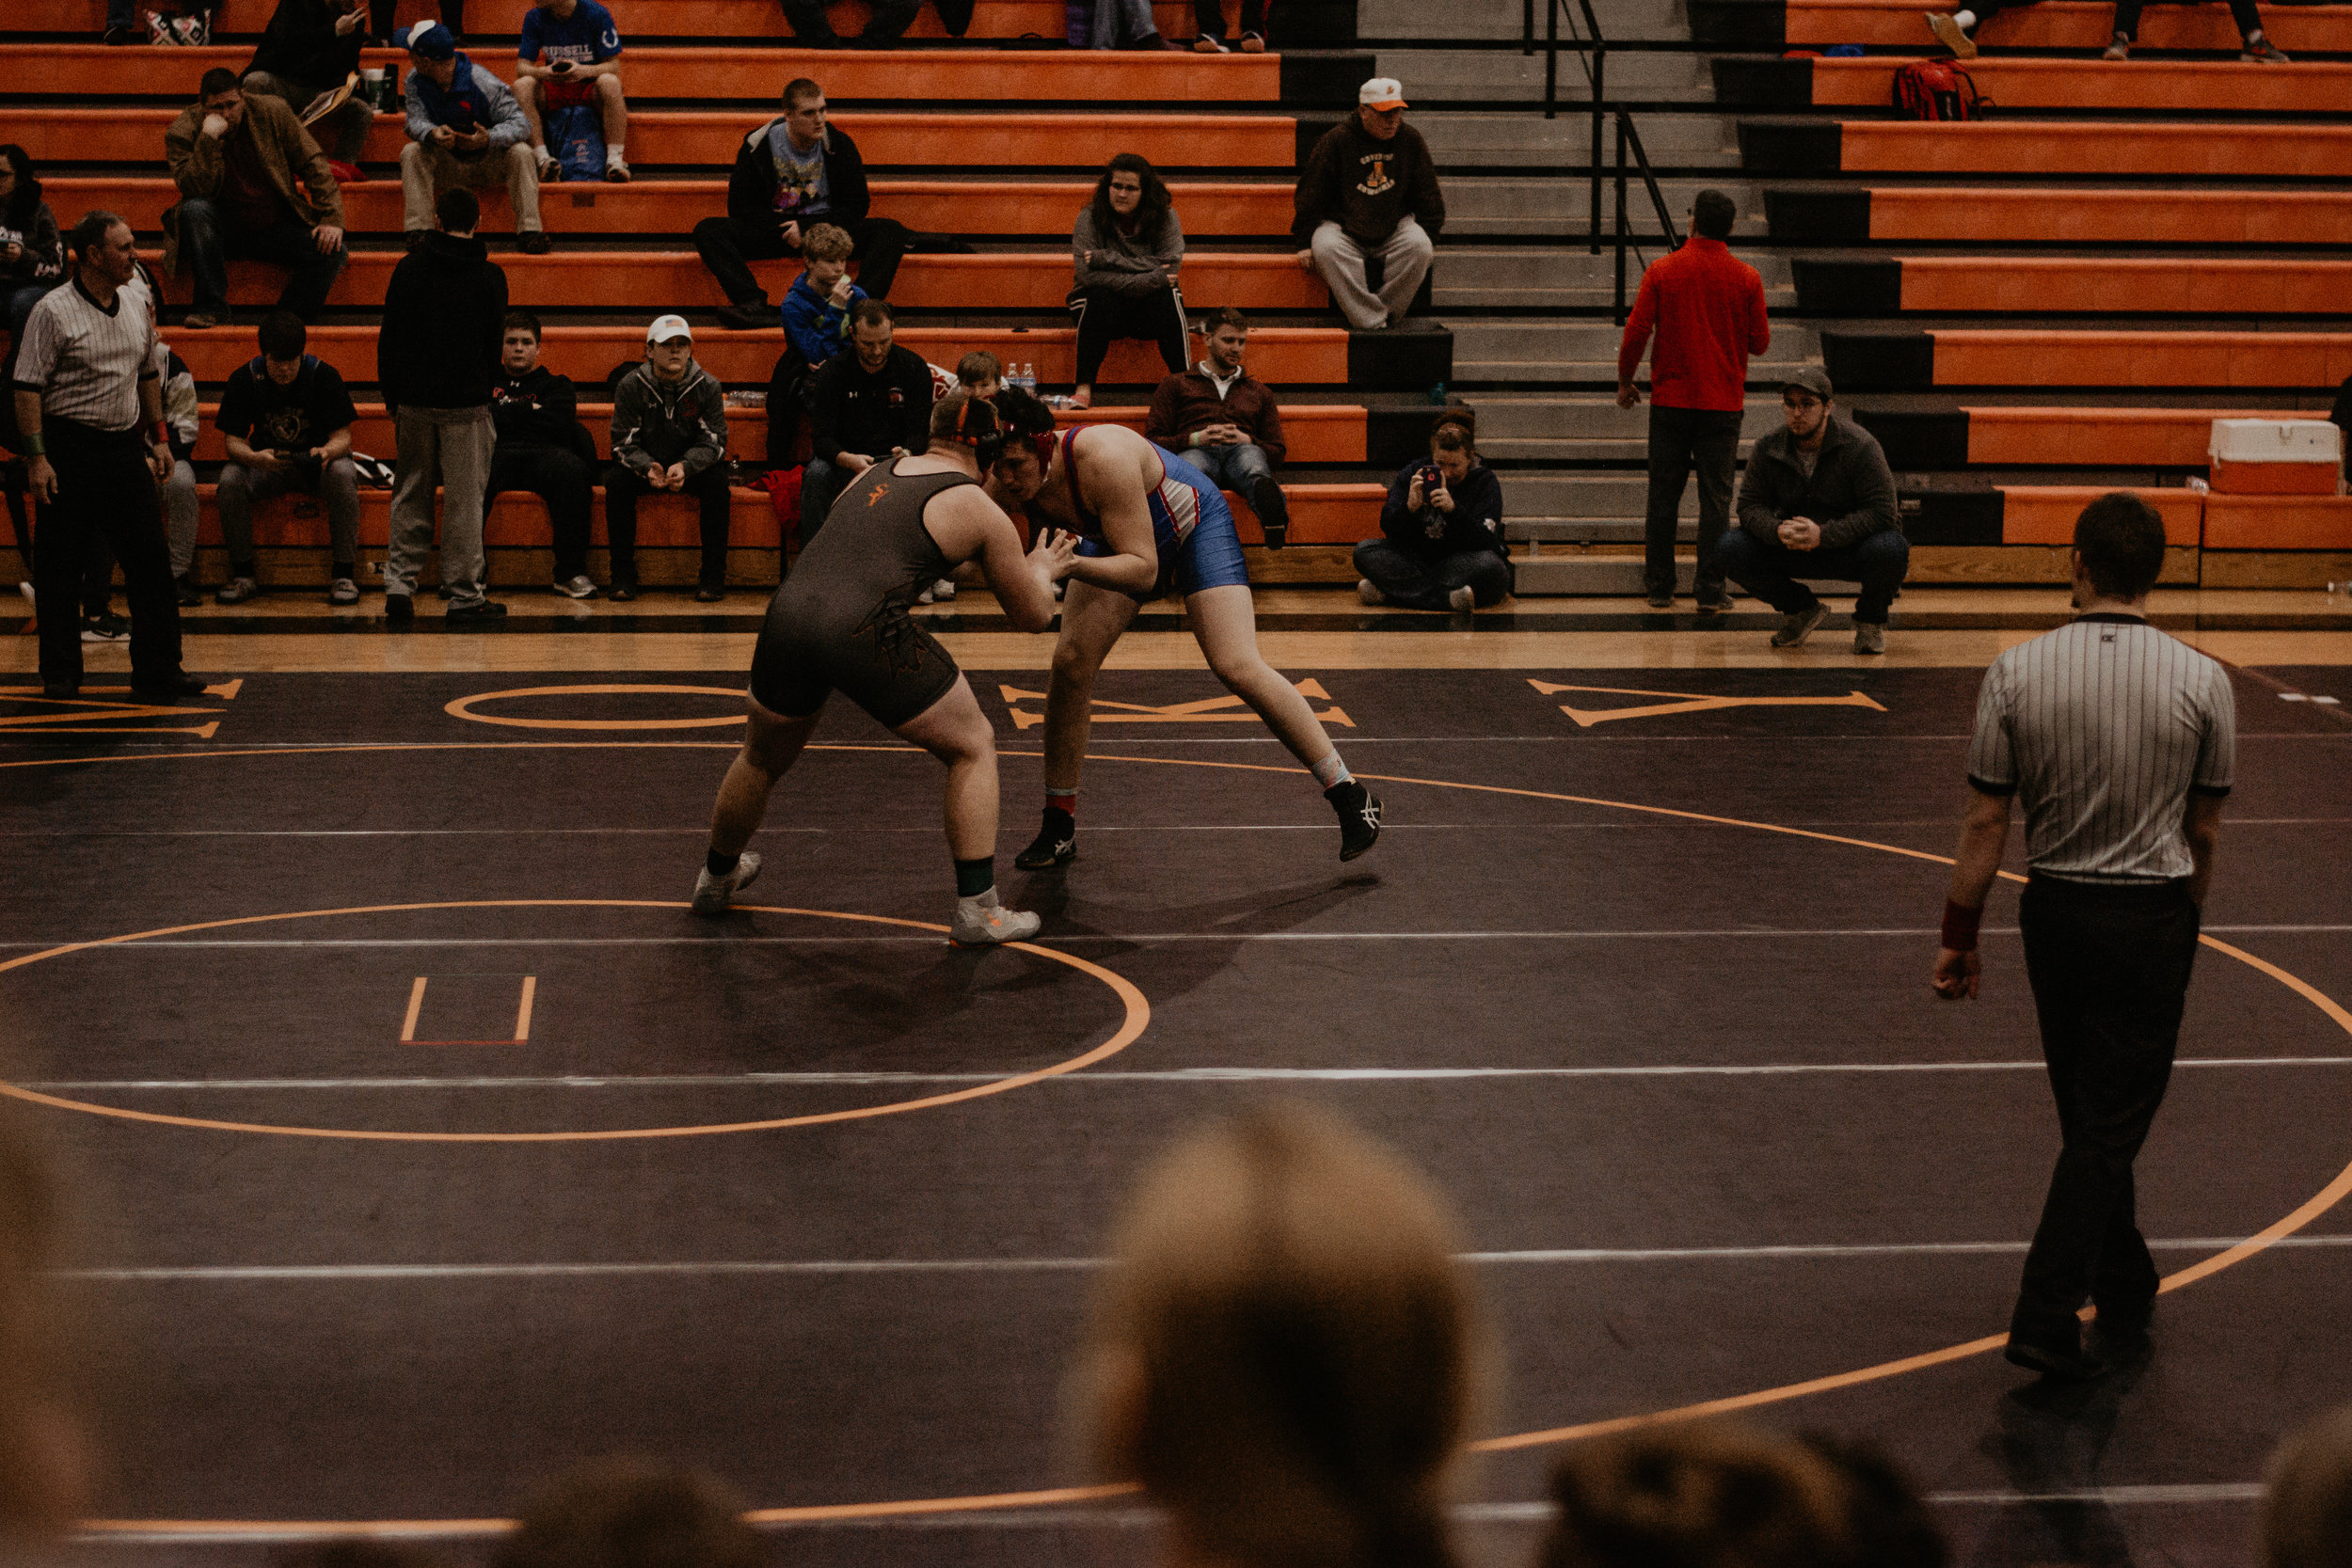 Ethan Wampler captured 1st place in the 4A Regional Tournament in Lindsborg over the weekend, capping off Saturday with a win by fall over Ryely Seals of Santa Fe Trail at 2:27 in the match.